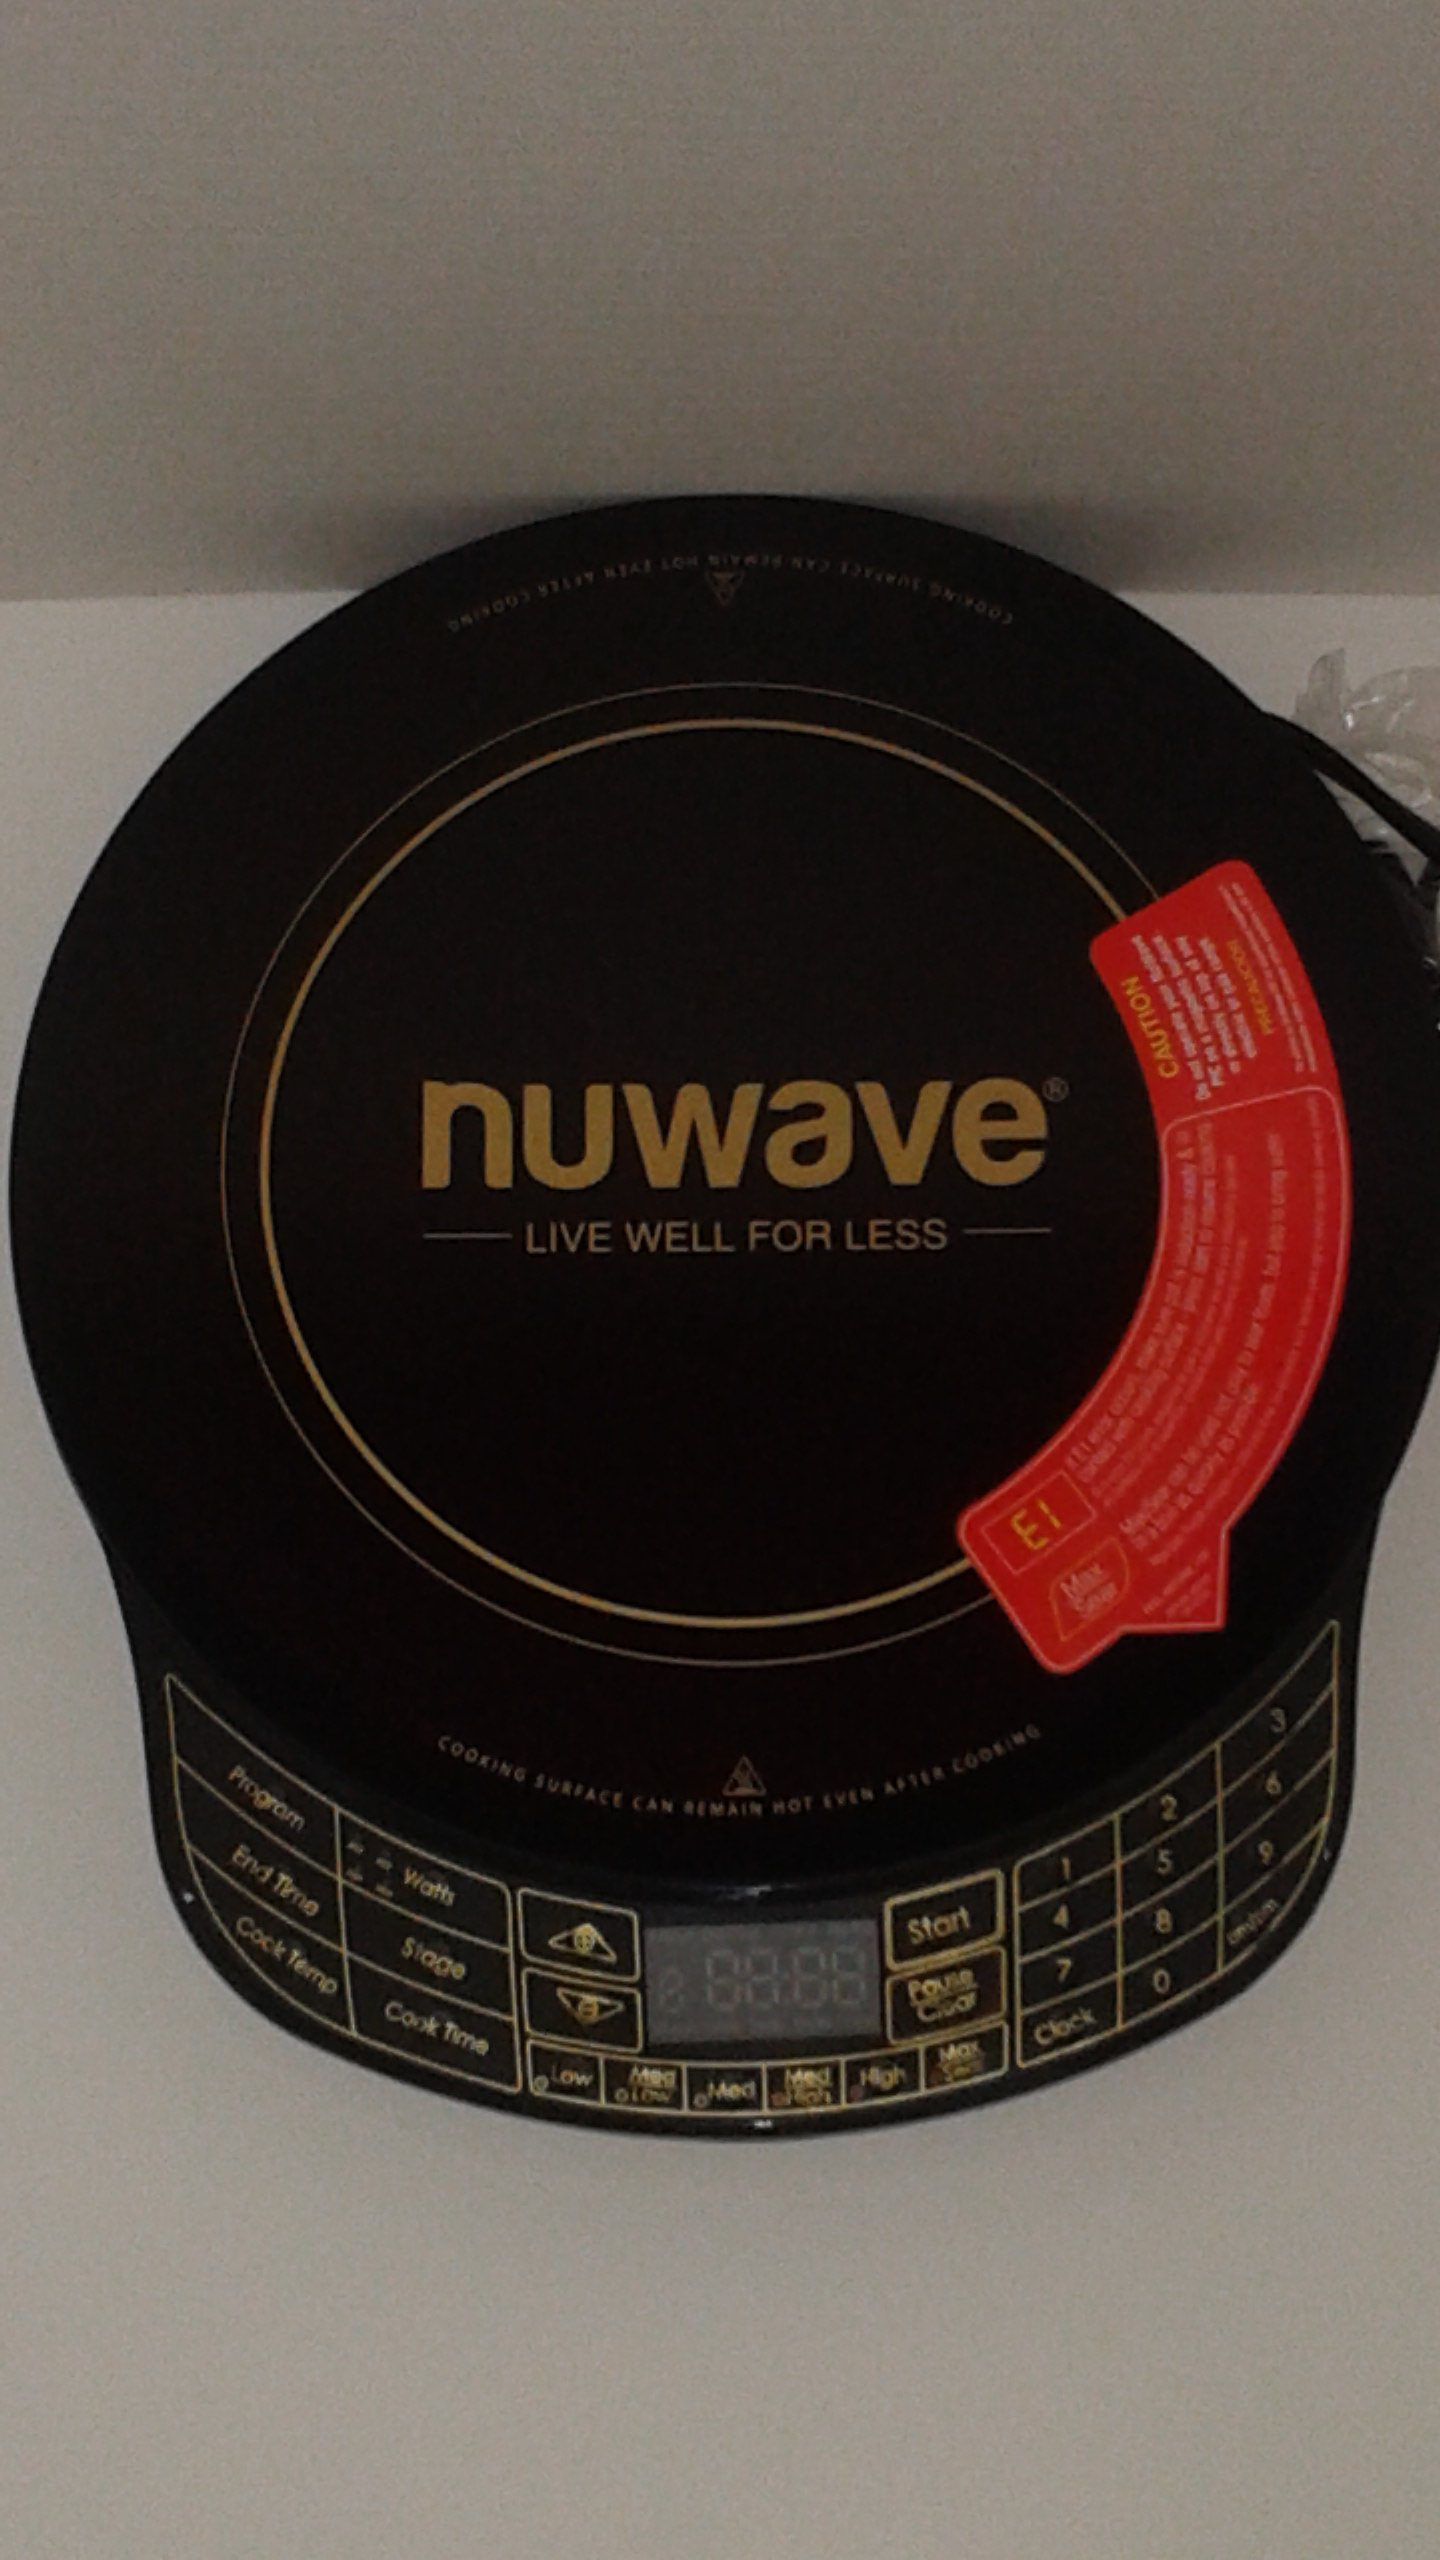 NuWave Platinum 30401 Precision Induction Cooktop, Black with Remote and Advanced Features for 2017 by NuWave (Image #8)